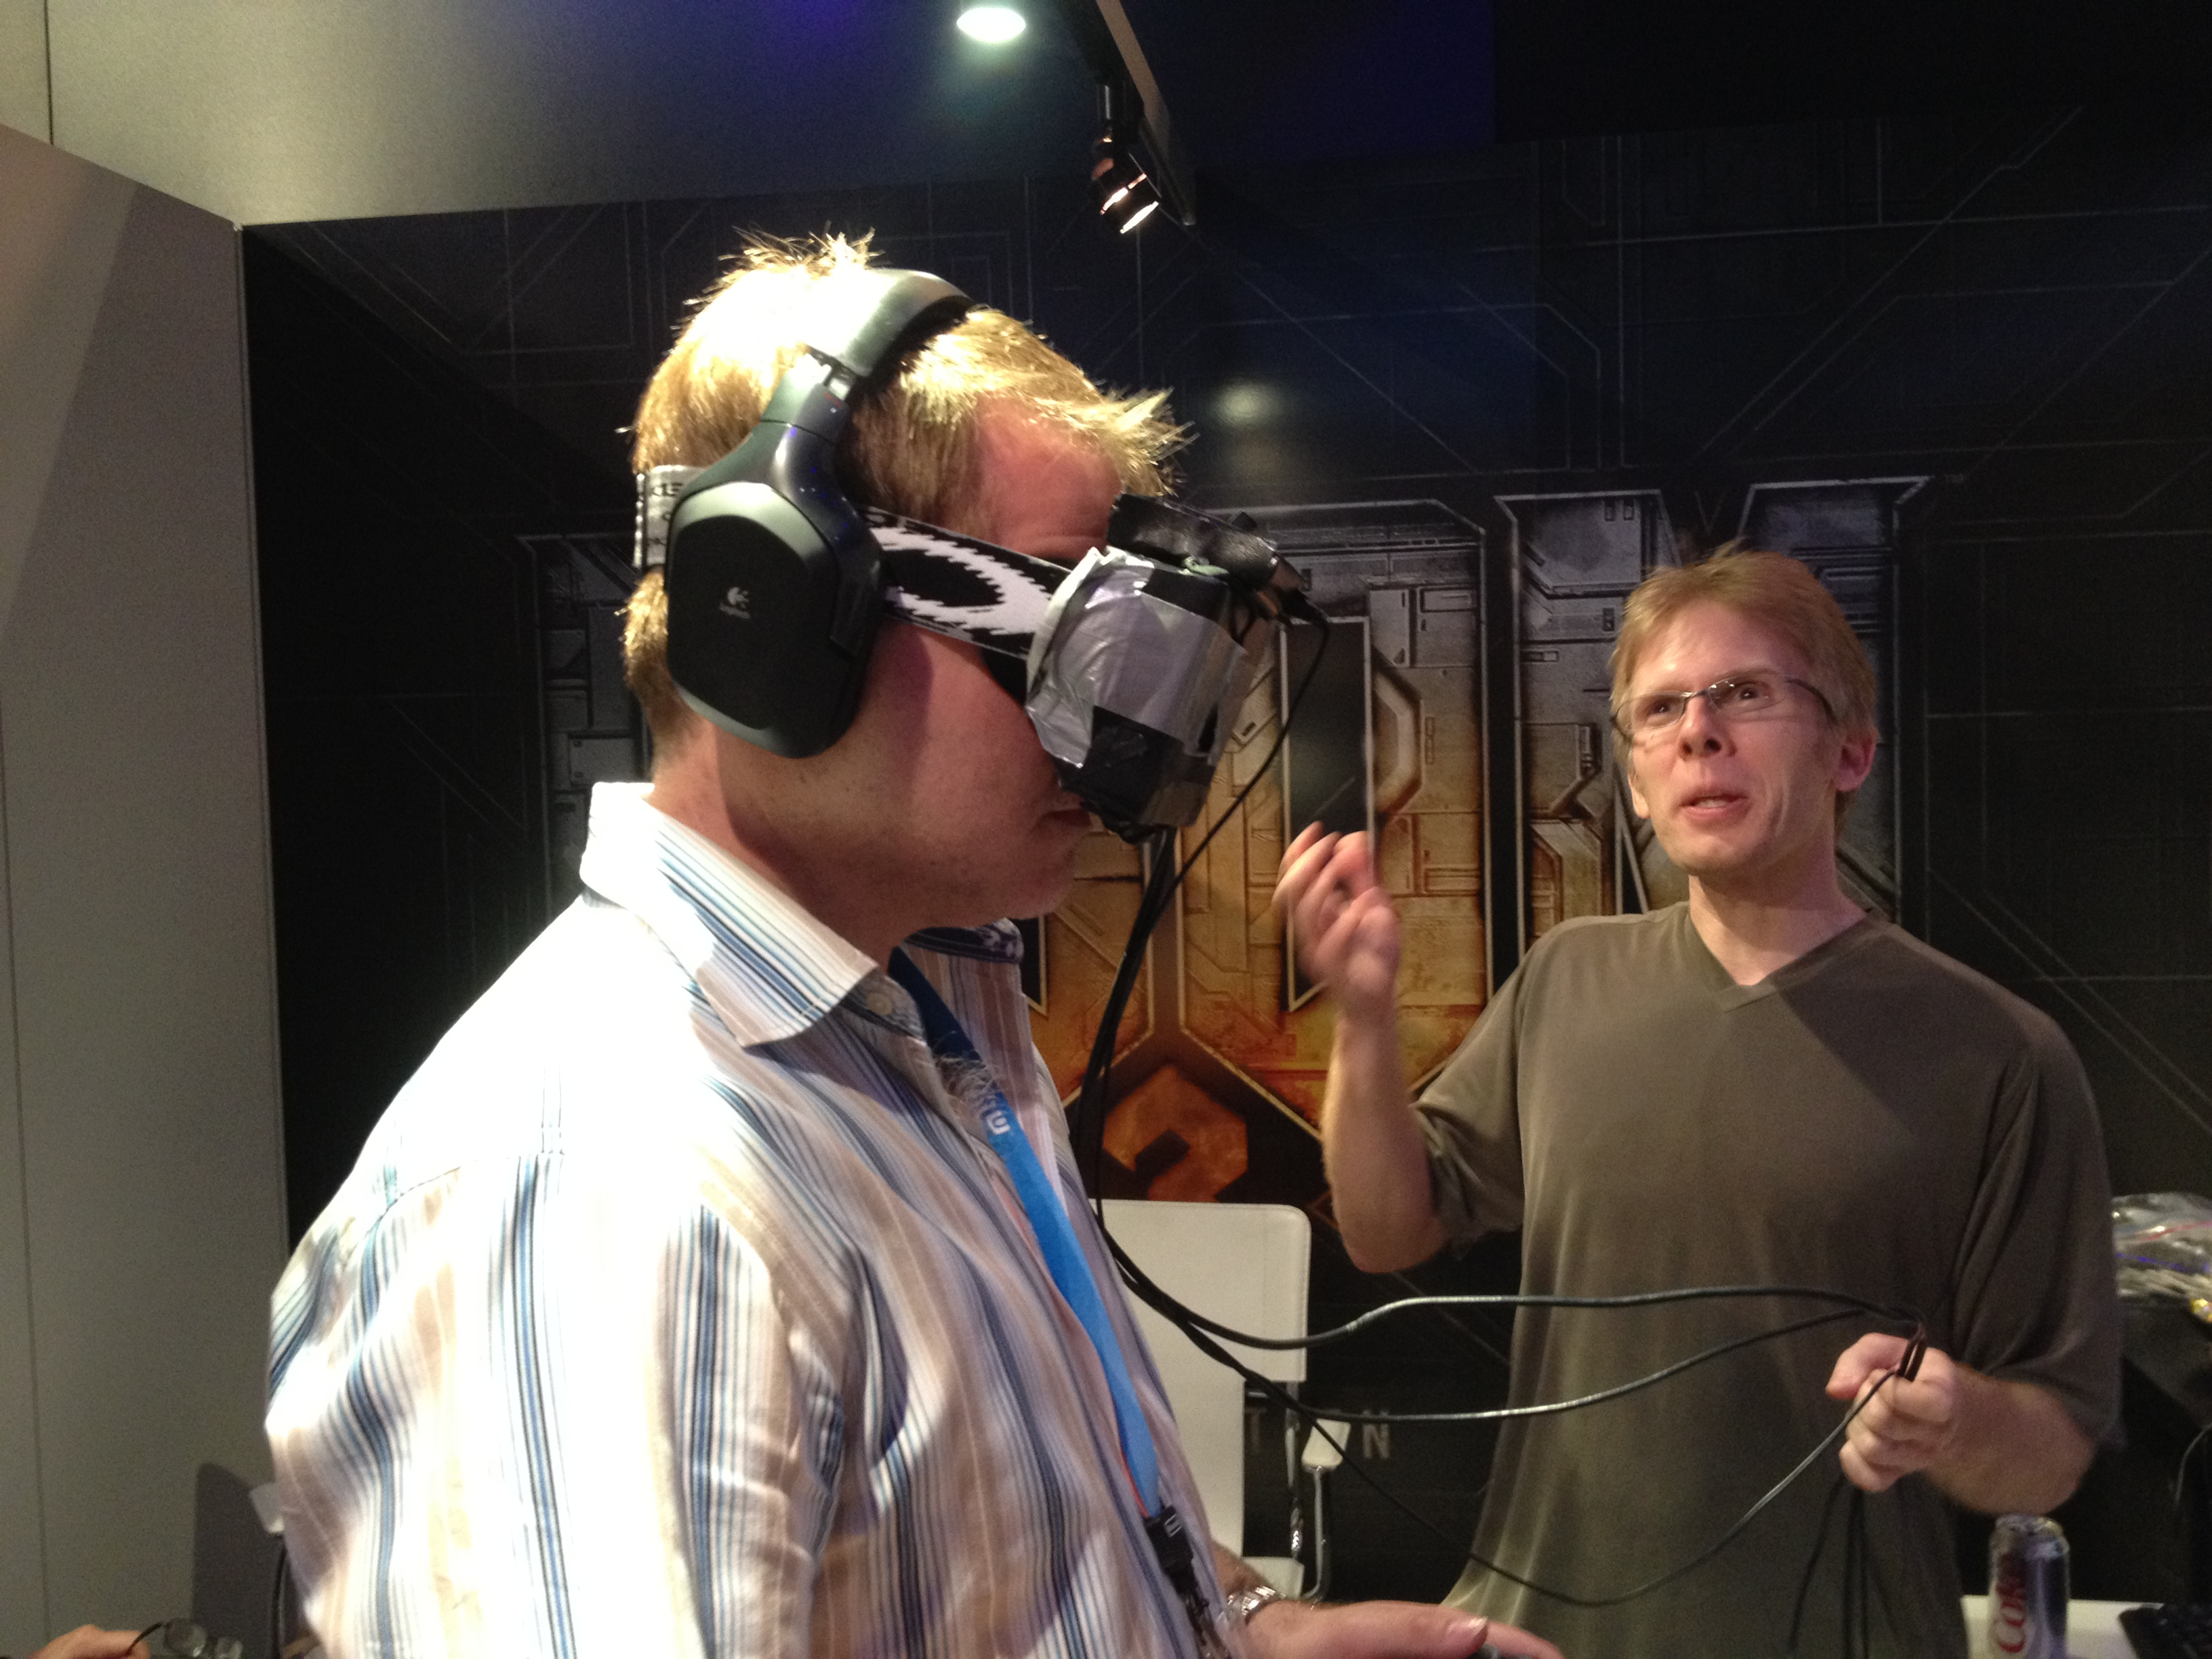 John Carmack und sein Head Mounted Display